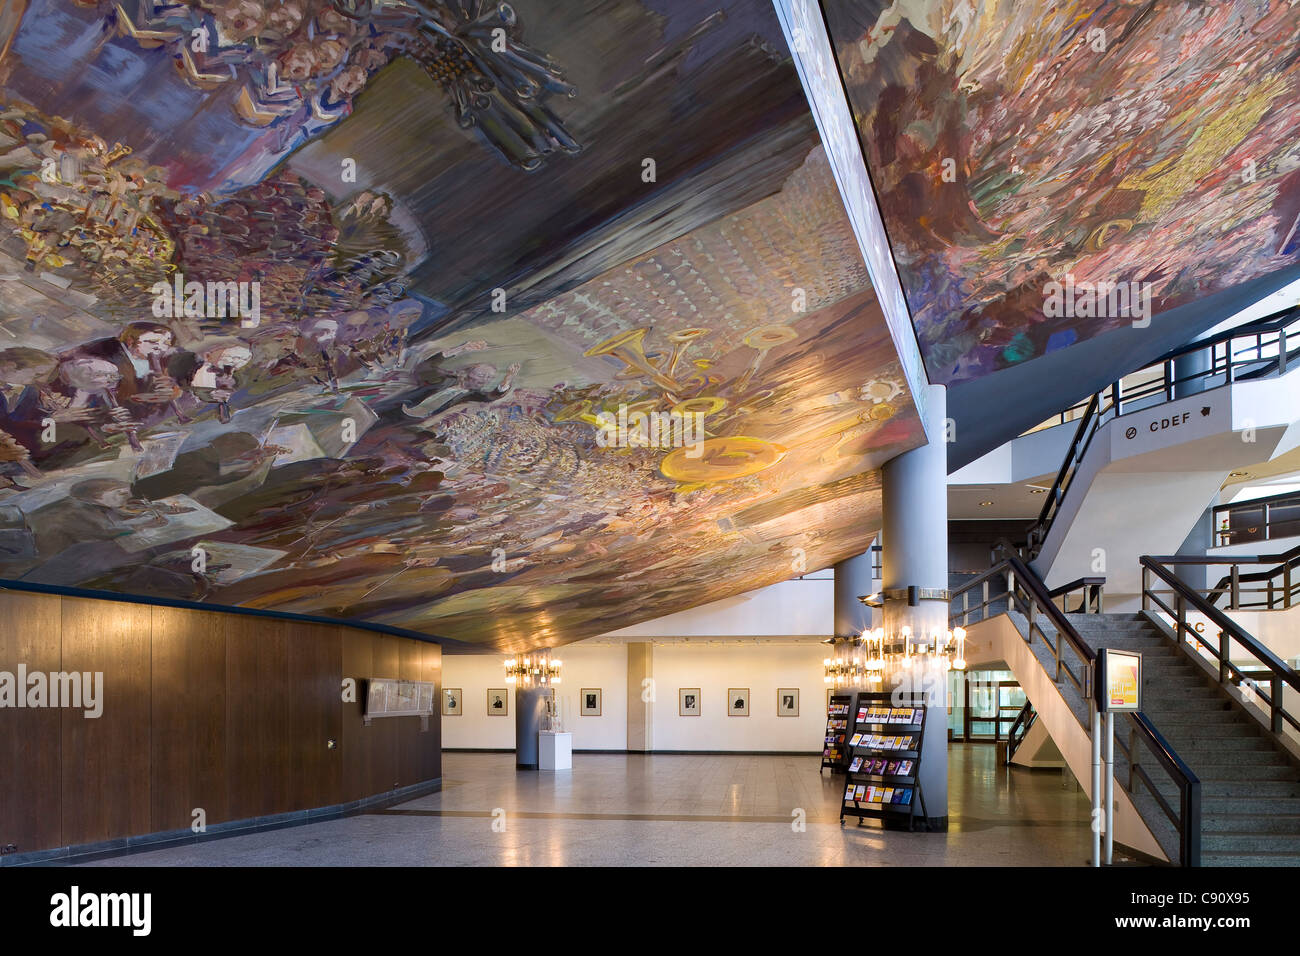 Ceiling fresco Gesang vom Leben in the foyer of the new Gewandhaus in Leipzig, Saxony, Germany, Europe - Stock Image